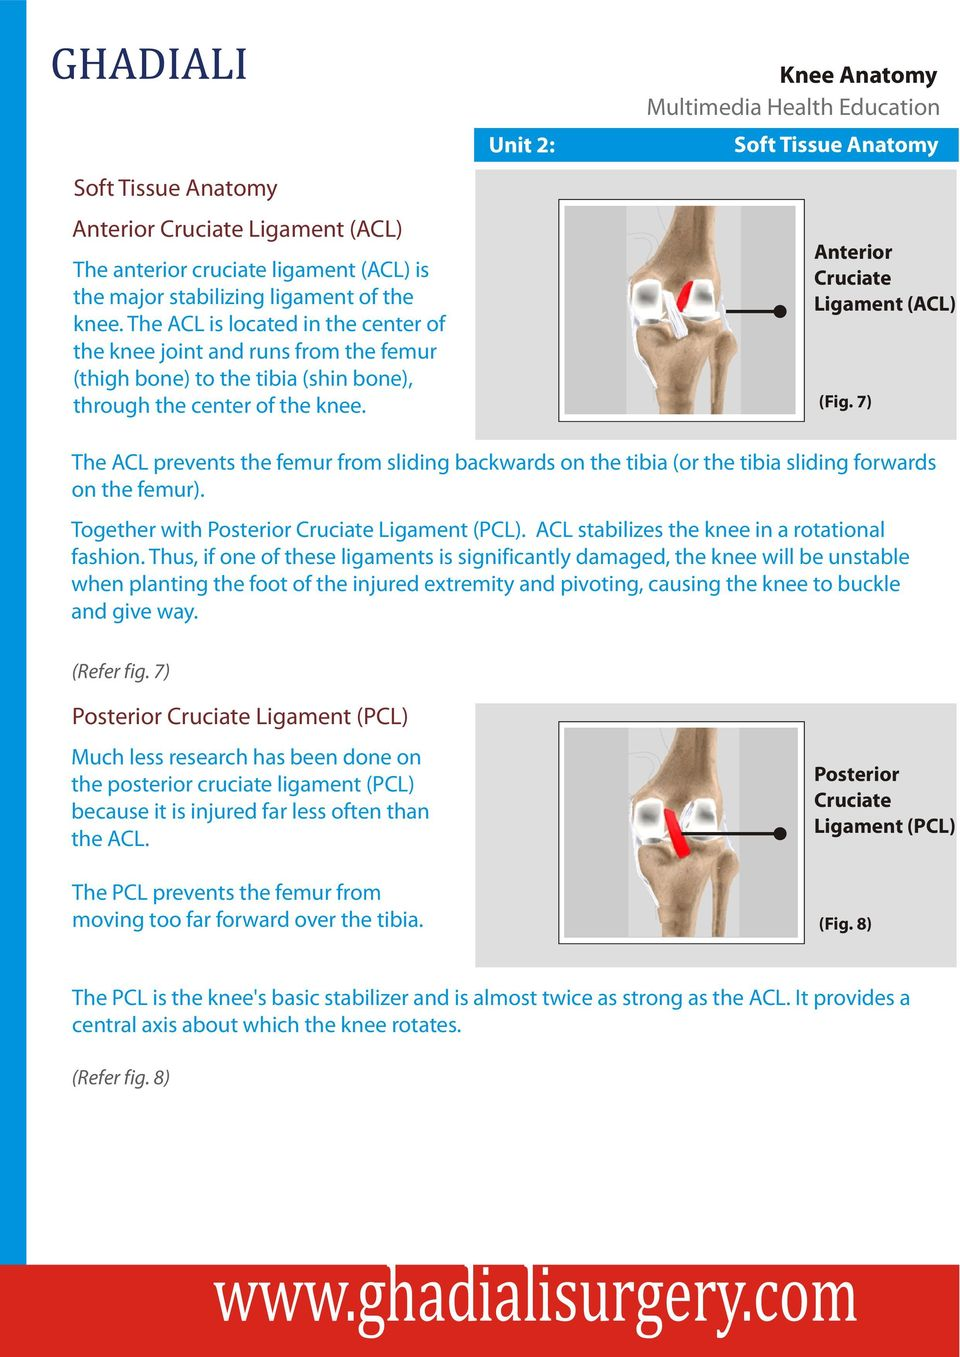 Unit 2: Soft Tissue Anatomy Anterior Cruciate Ligament (ACL) (Fig. 7) The ACL prevents the femur from sliding backwards on the tibia (or the tibia sliding forwards on the femur).